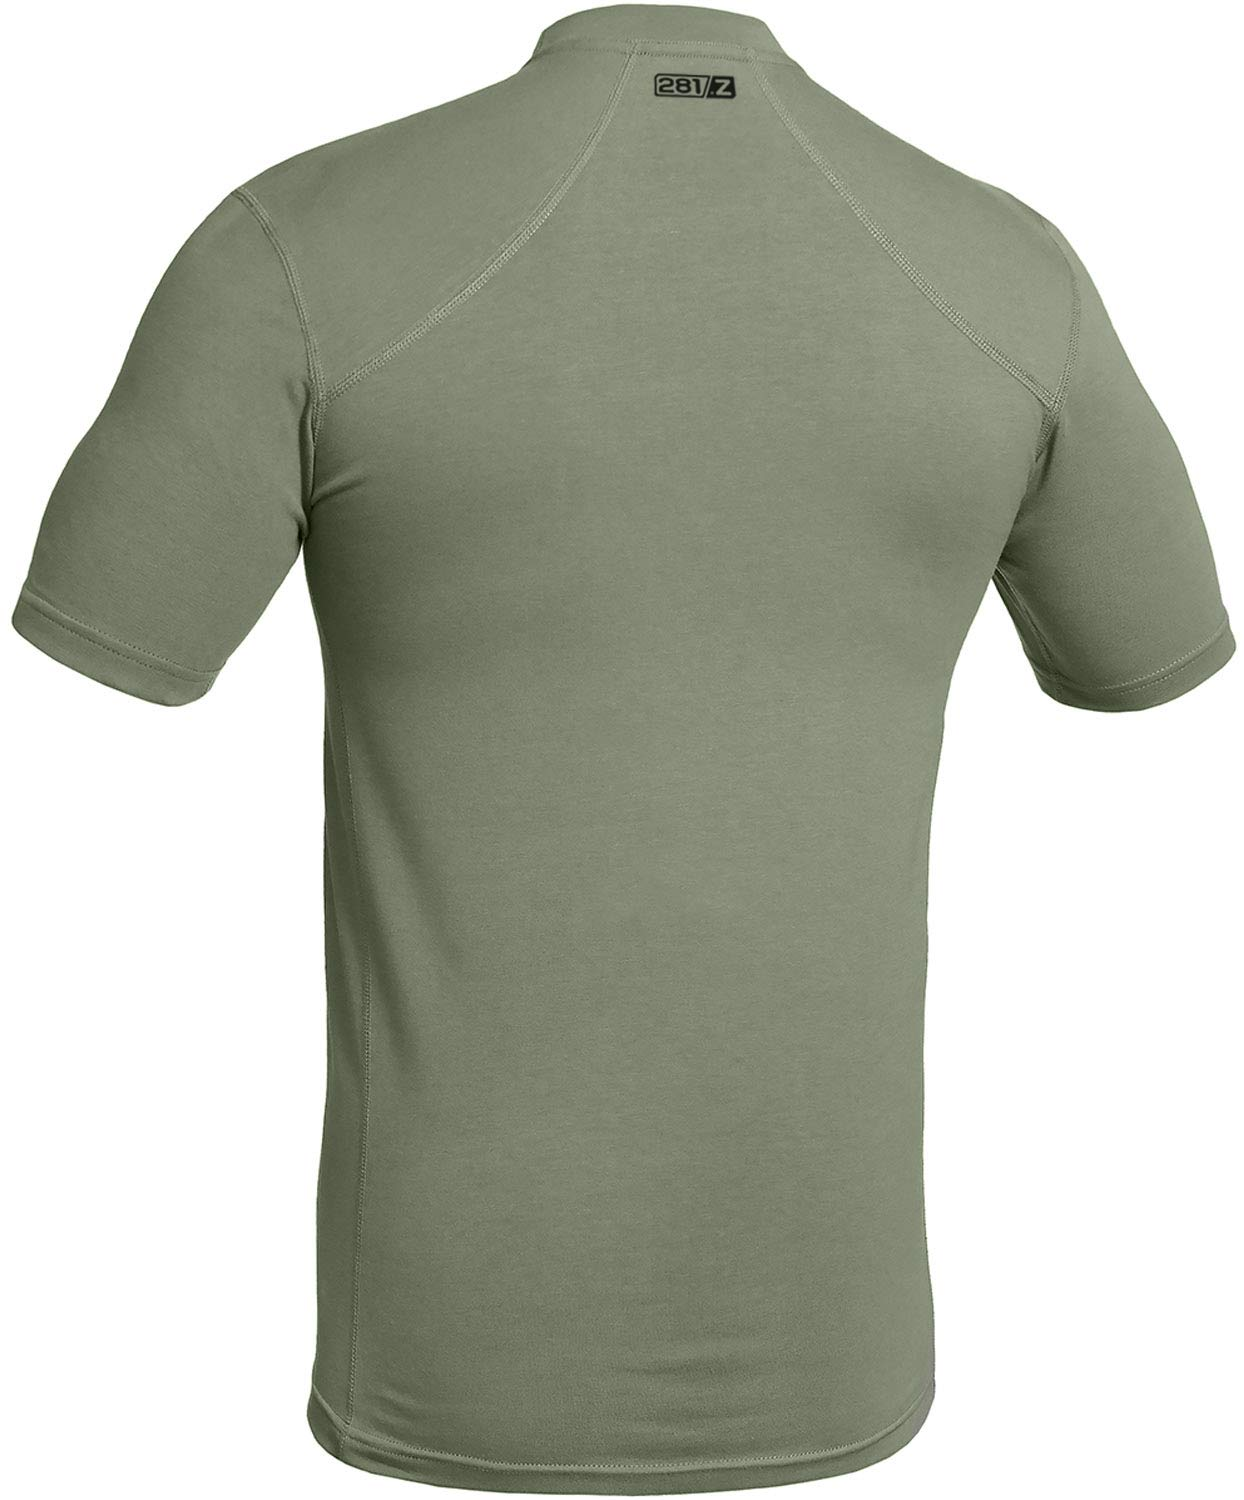 281Z Military Stretch Cotton Underwear T-Shirt - Tactical Hiking Outdoor - Punisher Combat Line (Olive Drab, Large) by 281Z (Image #2)